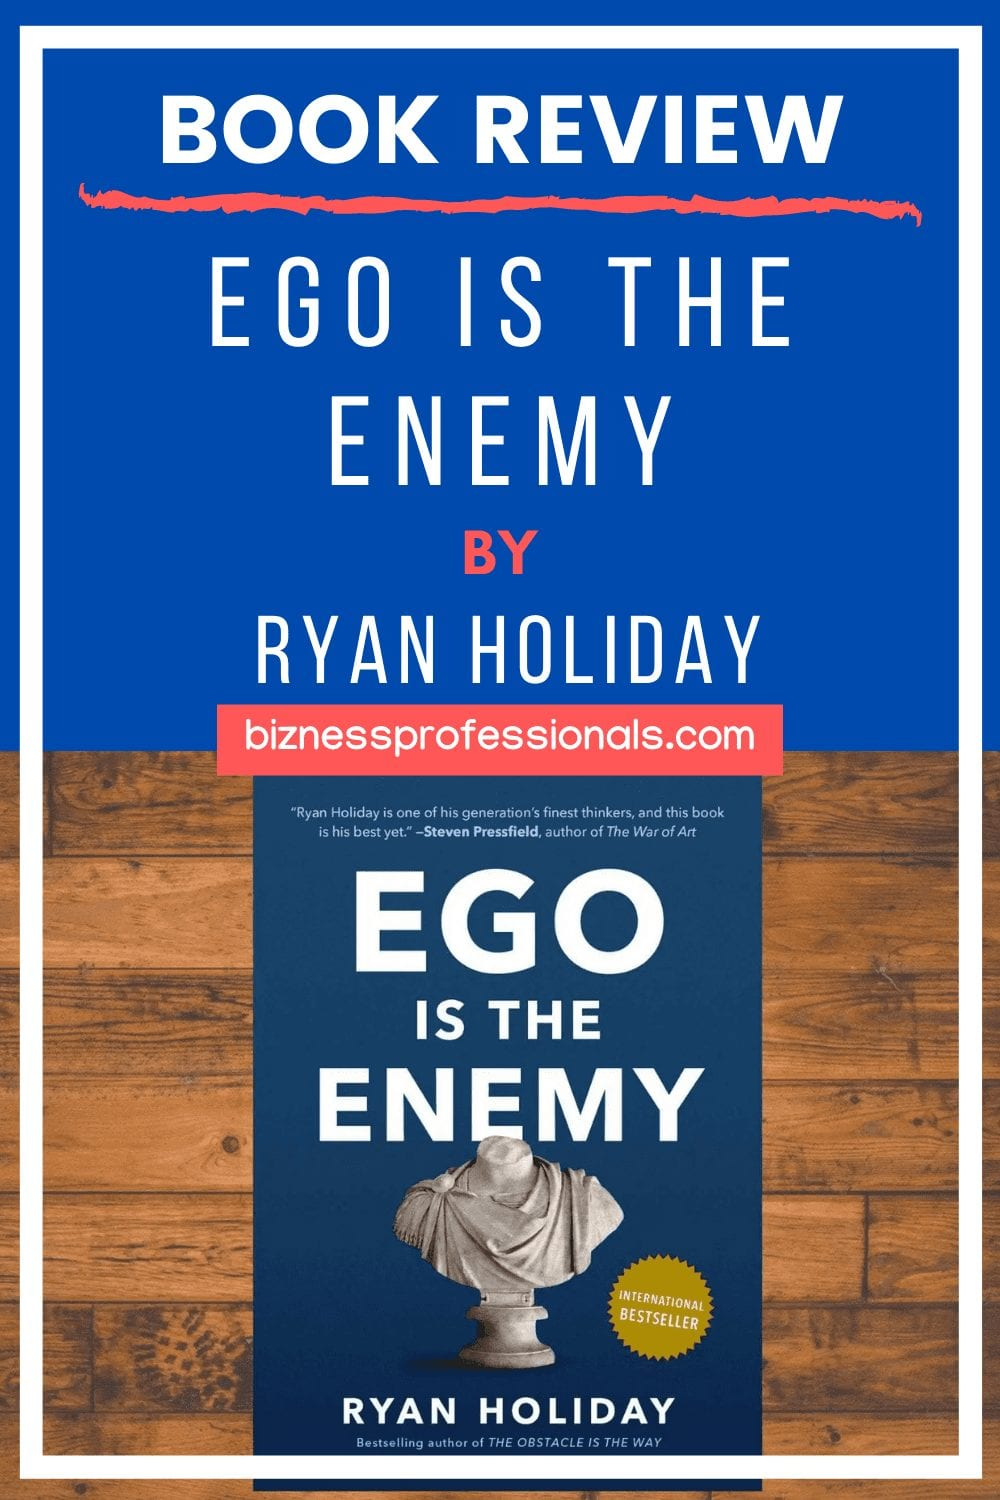 ego is the enemy book review and summary